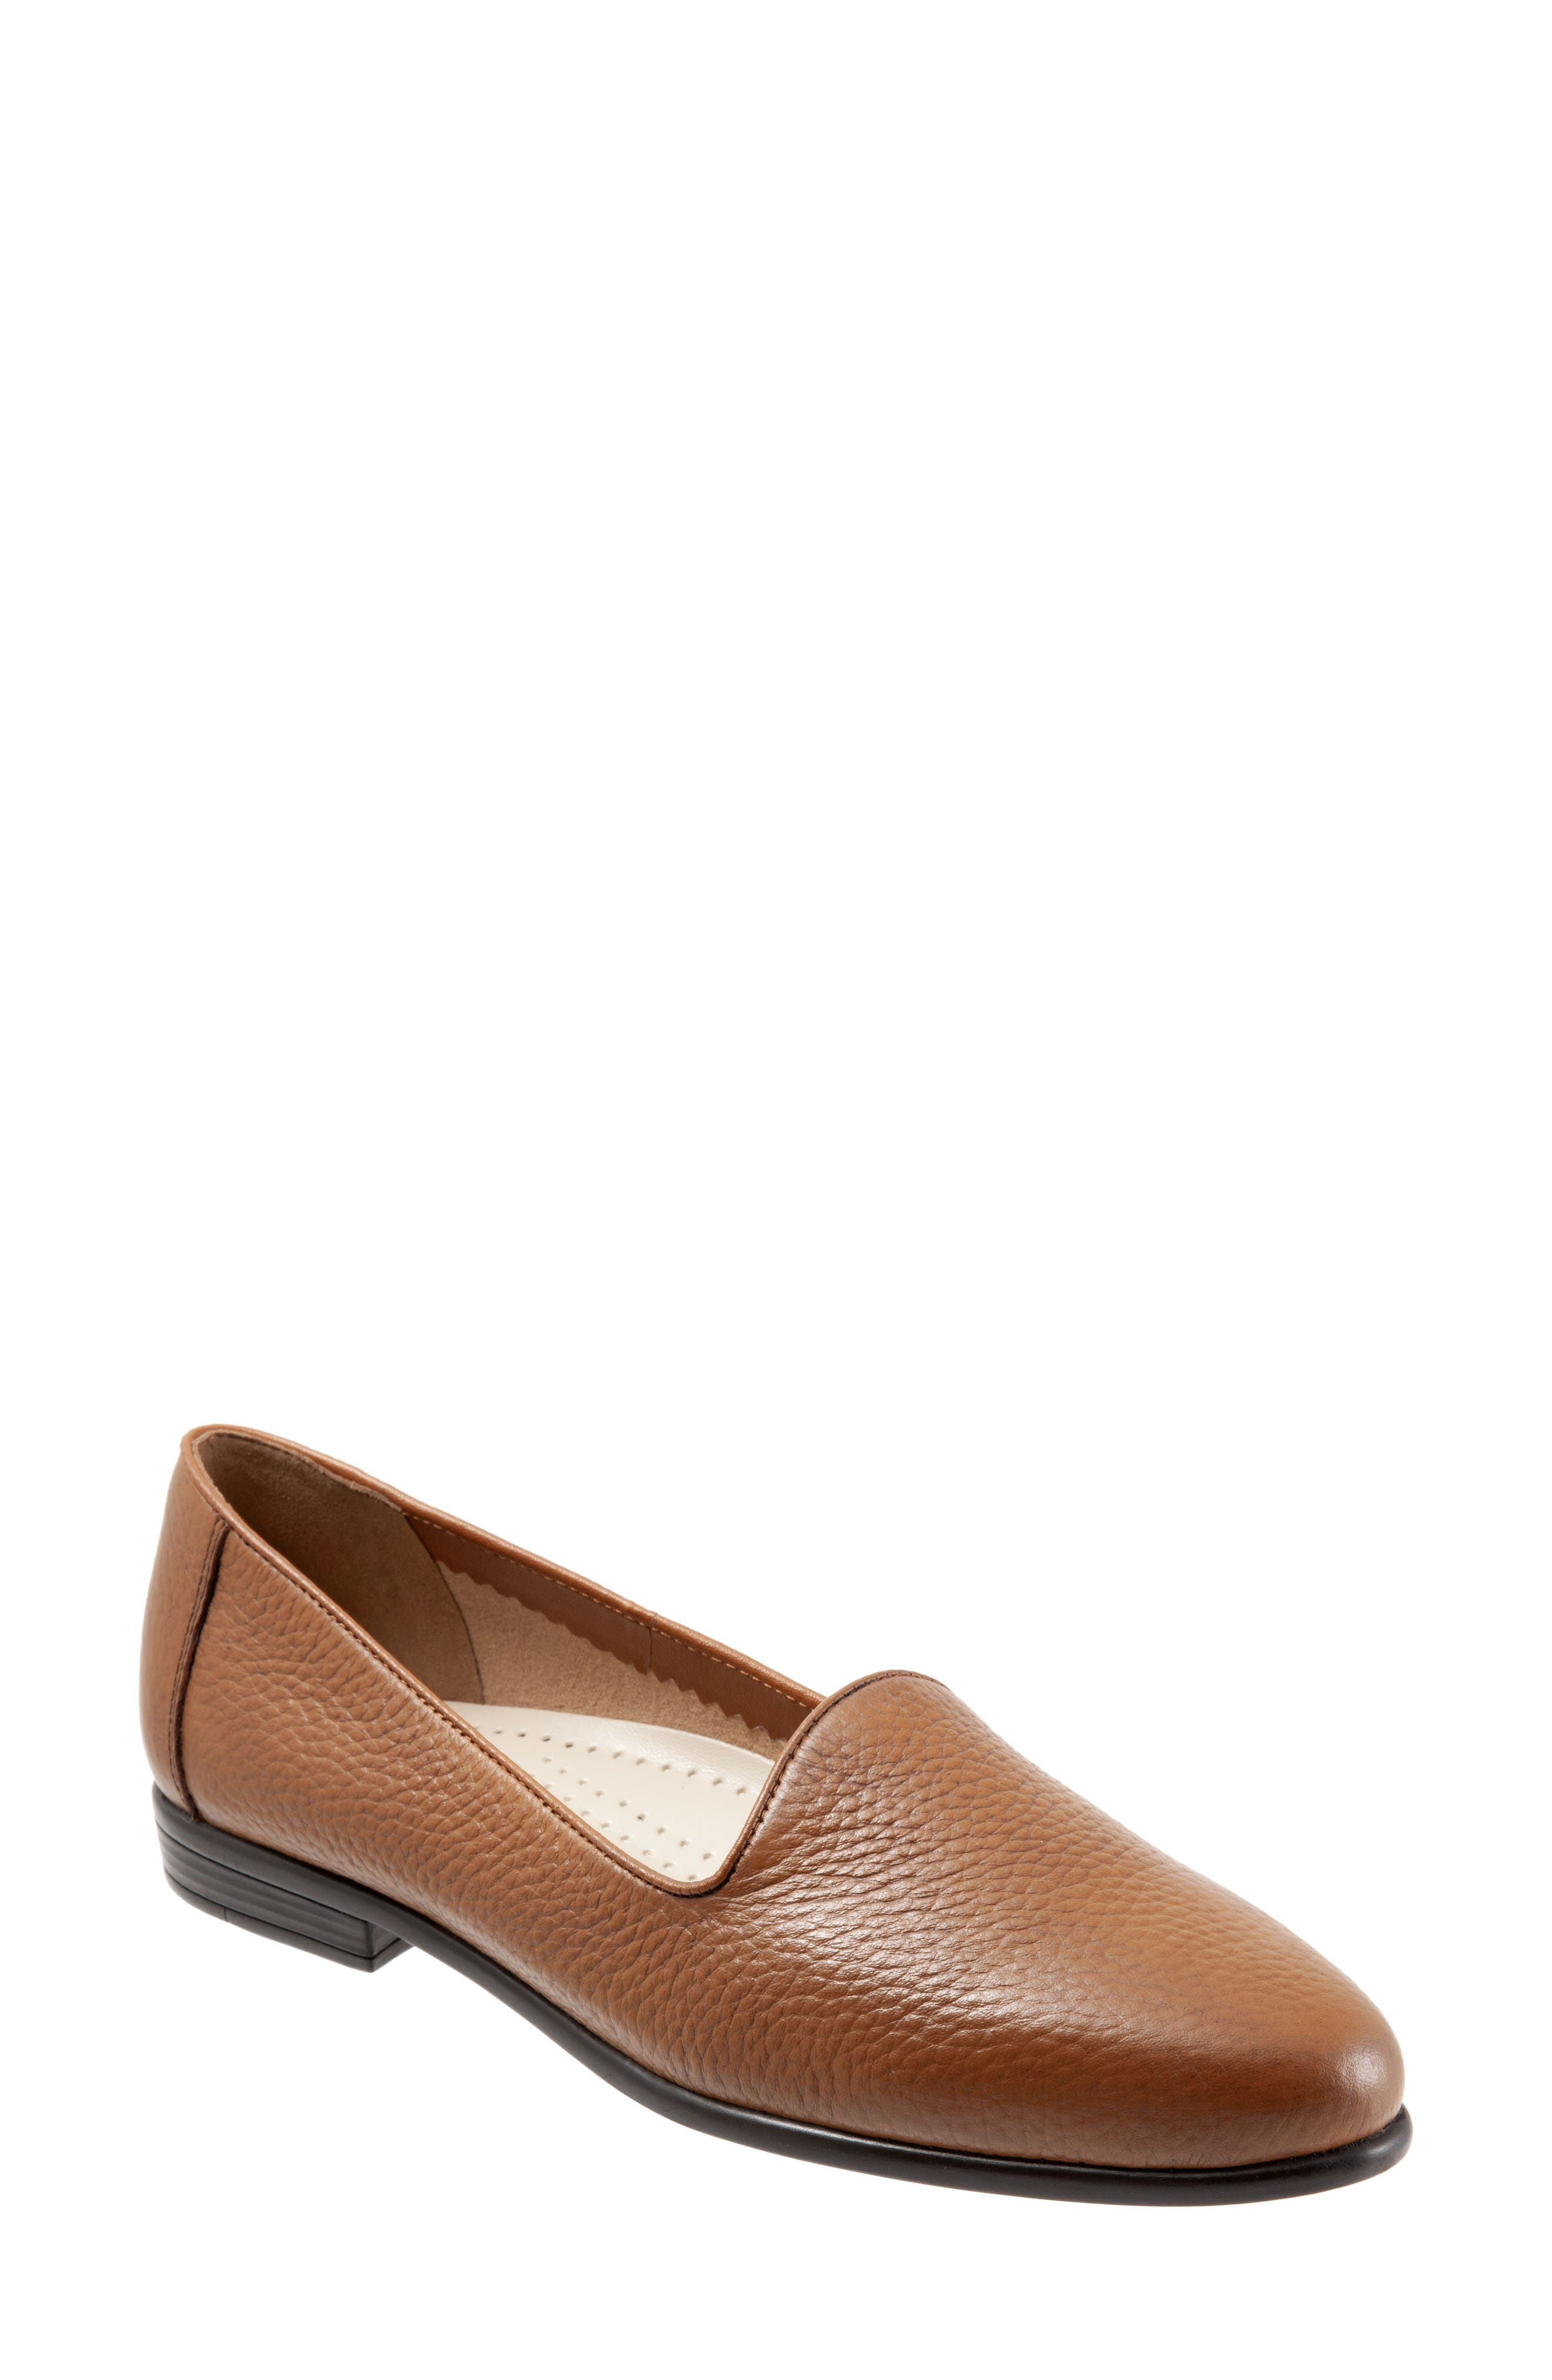 Liz Loafer,                             Main thumbnail 1, color,                             TAN LEATHER